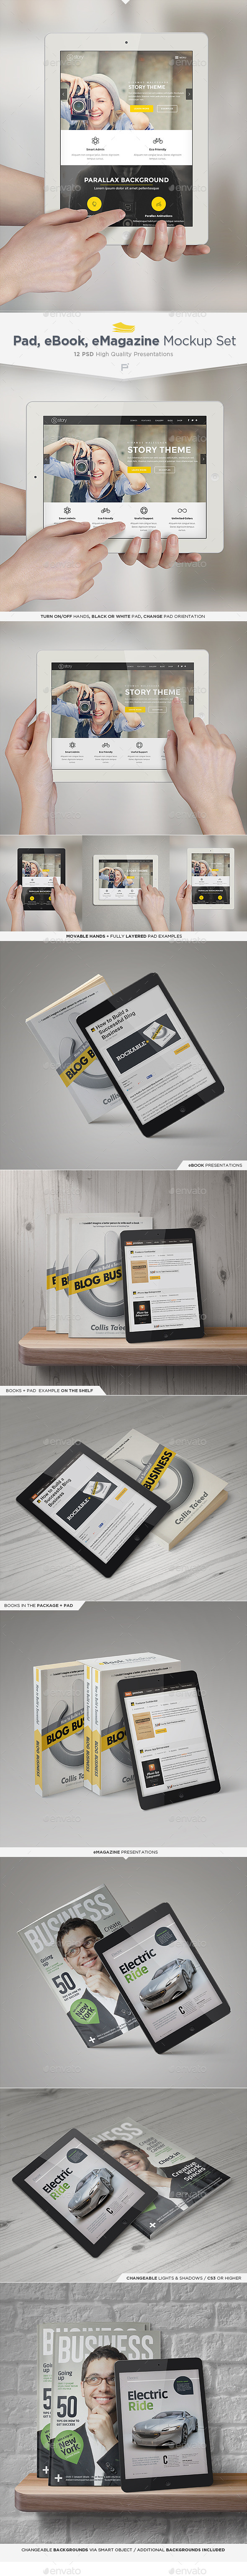 Pad, eBook, eMagazine Mock-Up Set - Multiple Displays